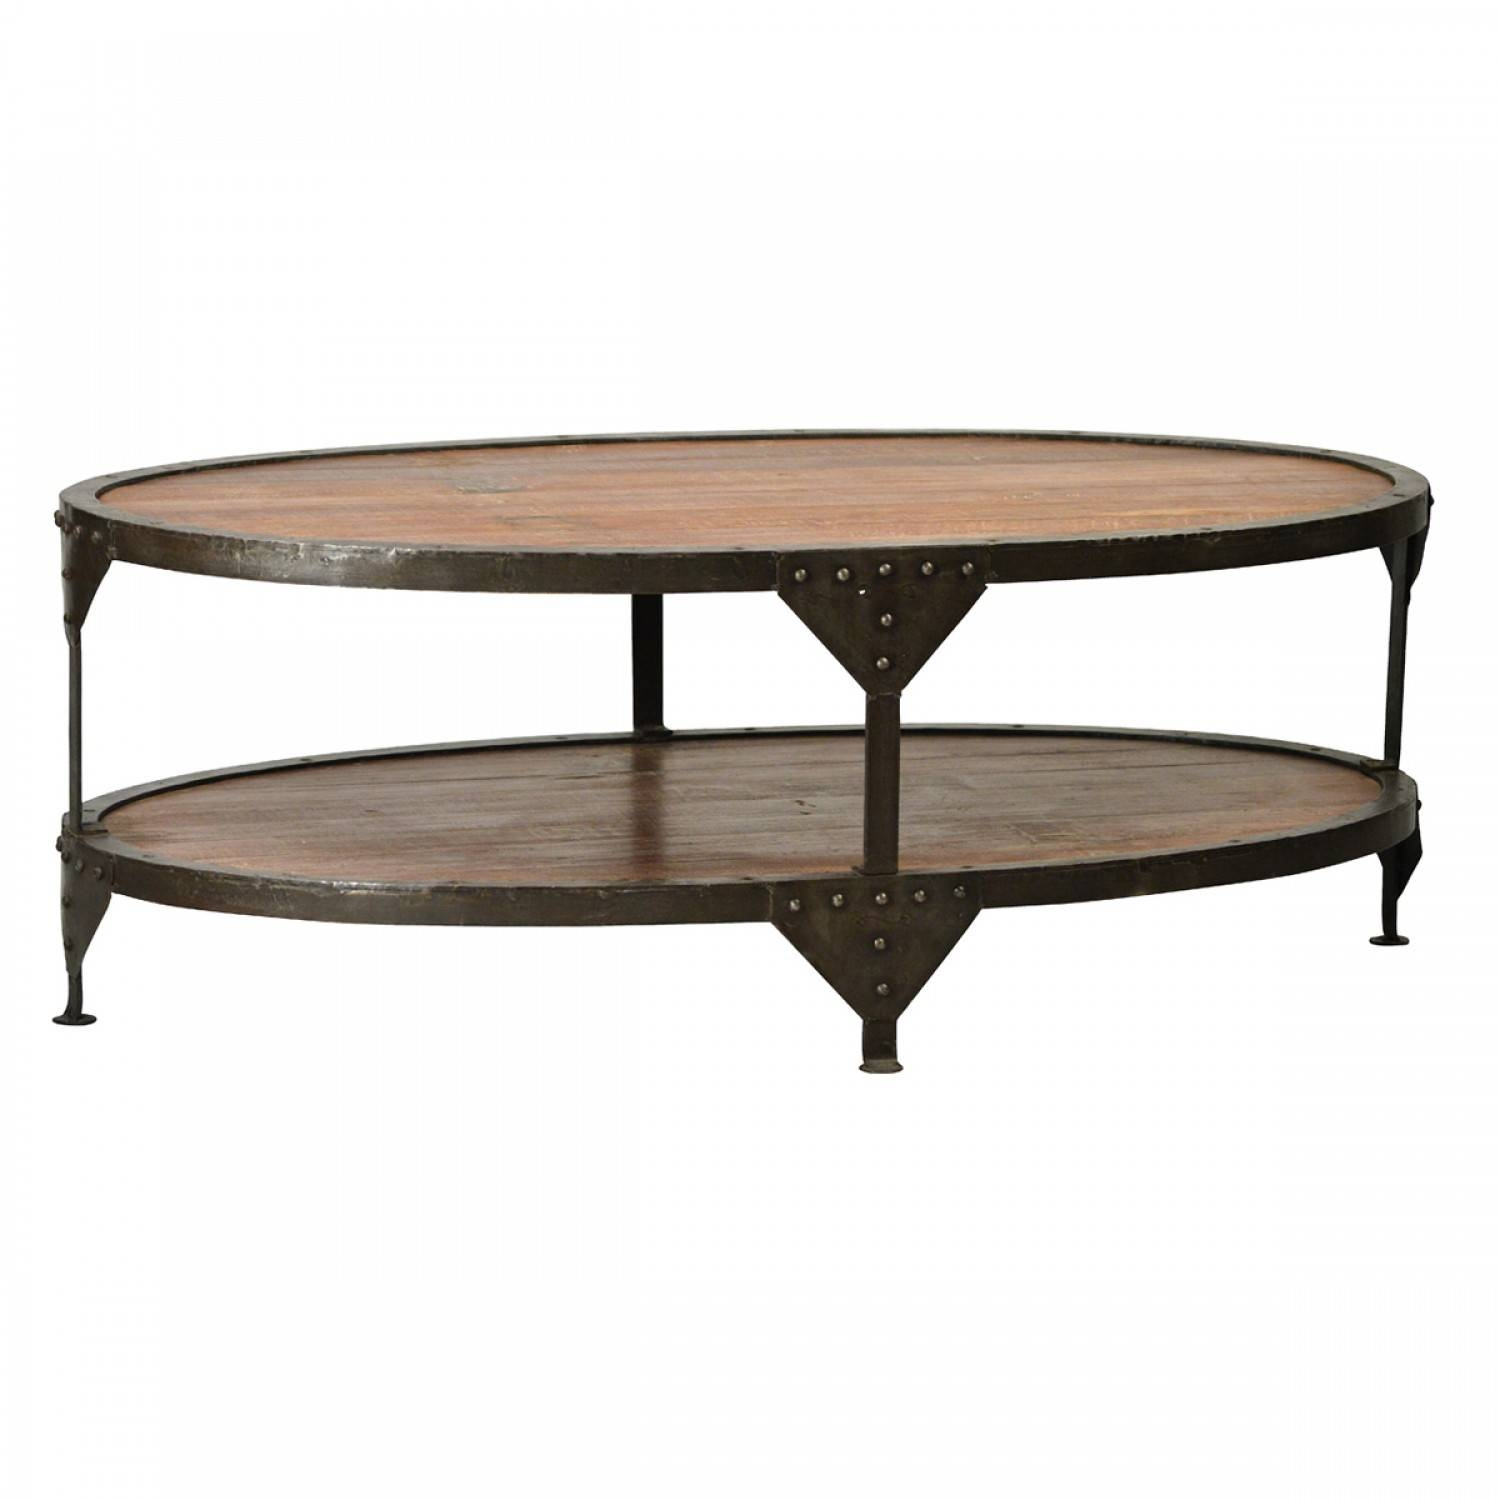 Oval Wood Coffee Table With Metal Legs | Coffee Tables Decoration inside Oval Wood Coffee Tables (Image 23 of 30)